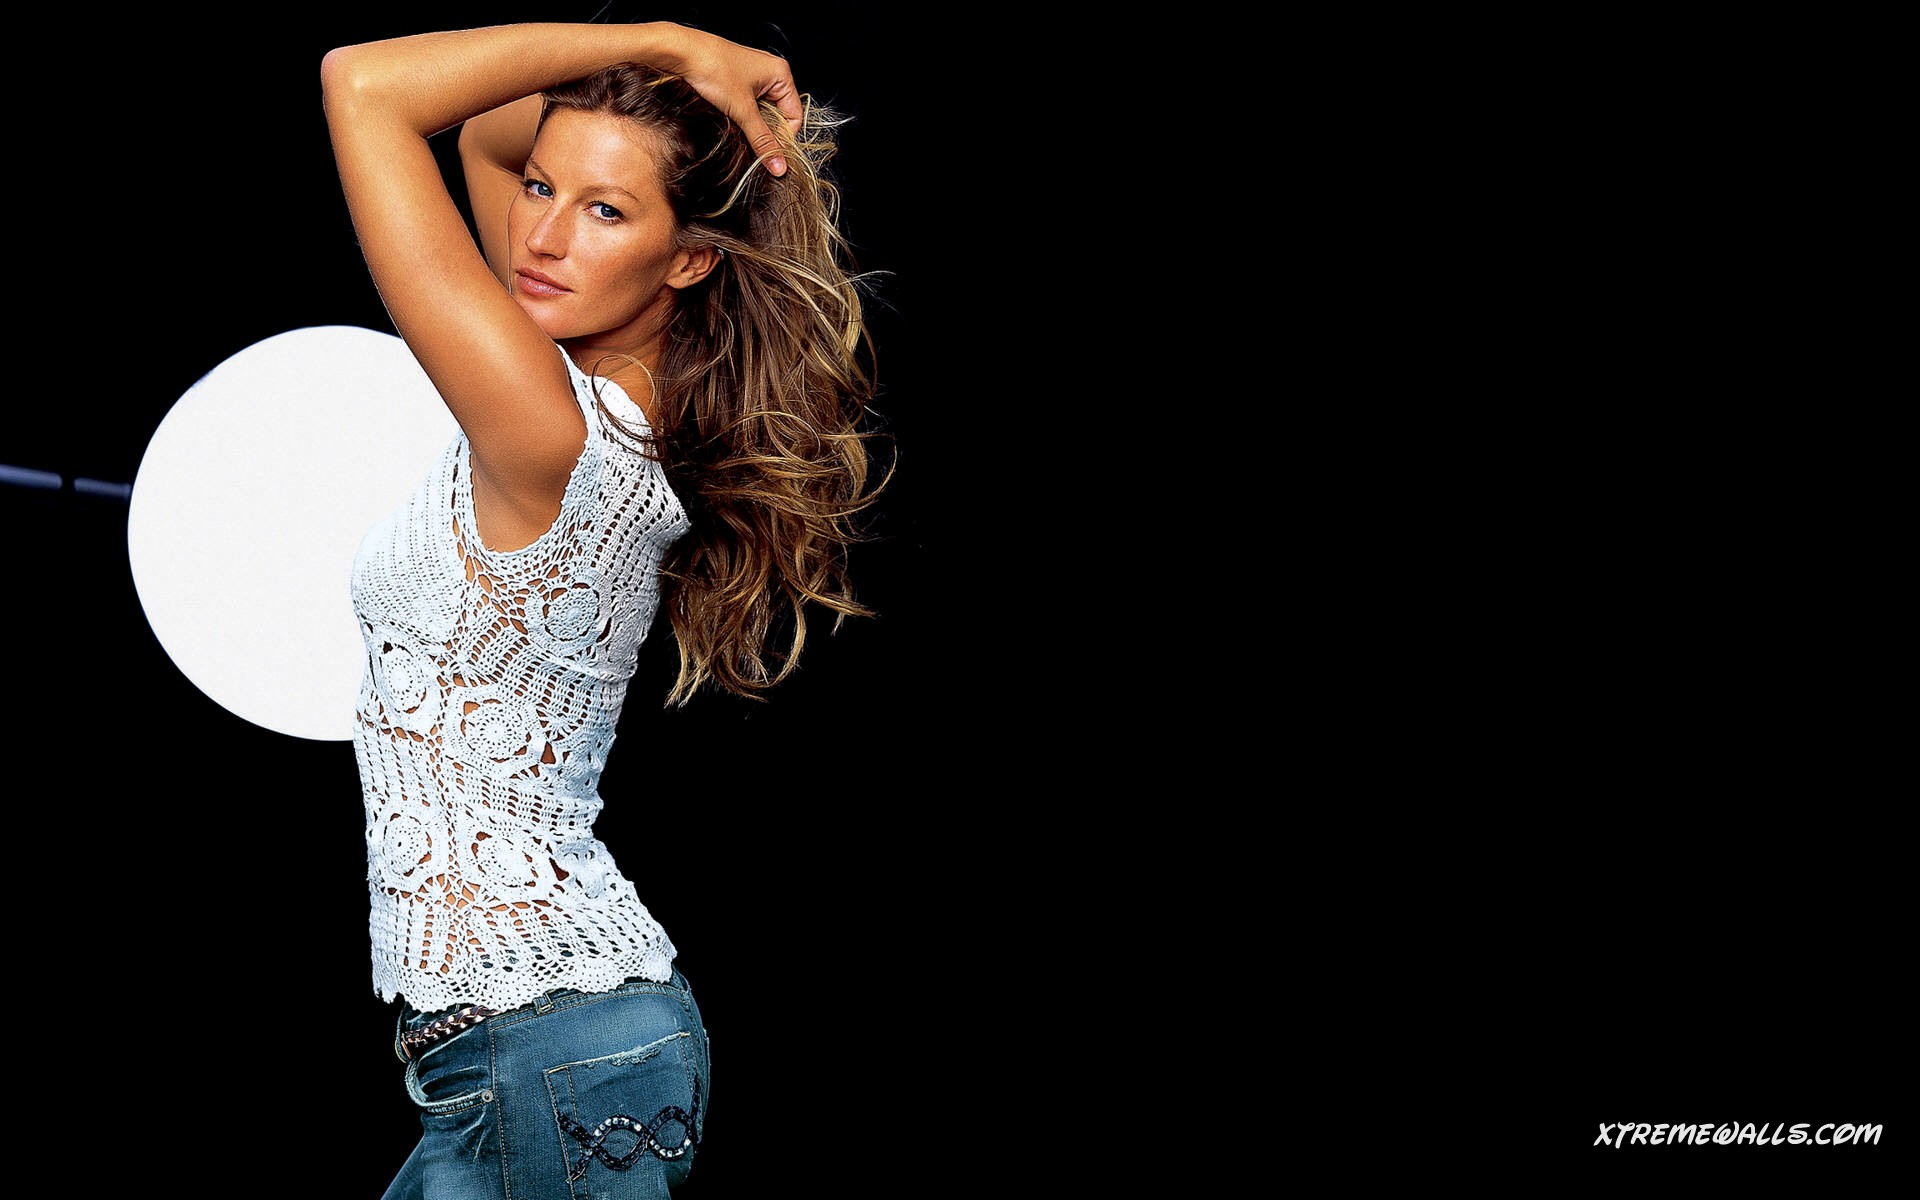 Daisy Iphone Wallpaper Gisele Bundchen Wallpapers Pictures Images